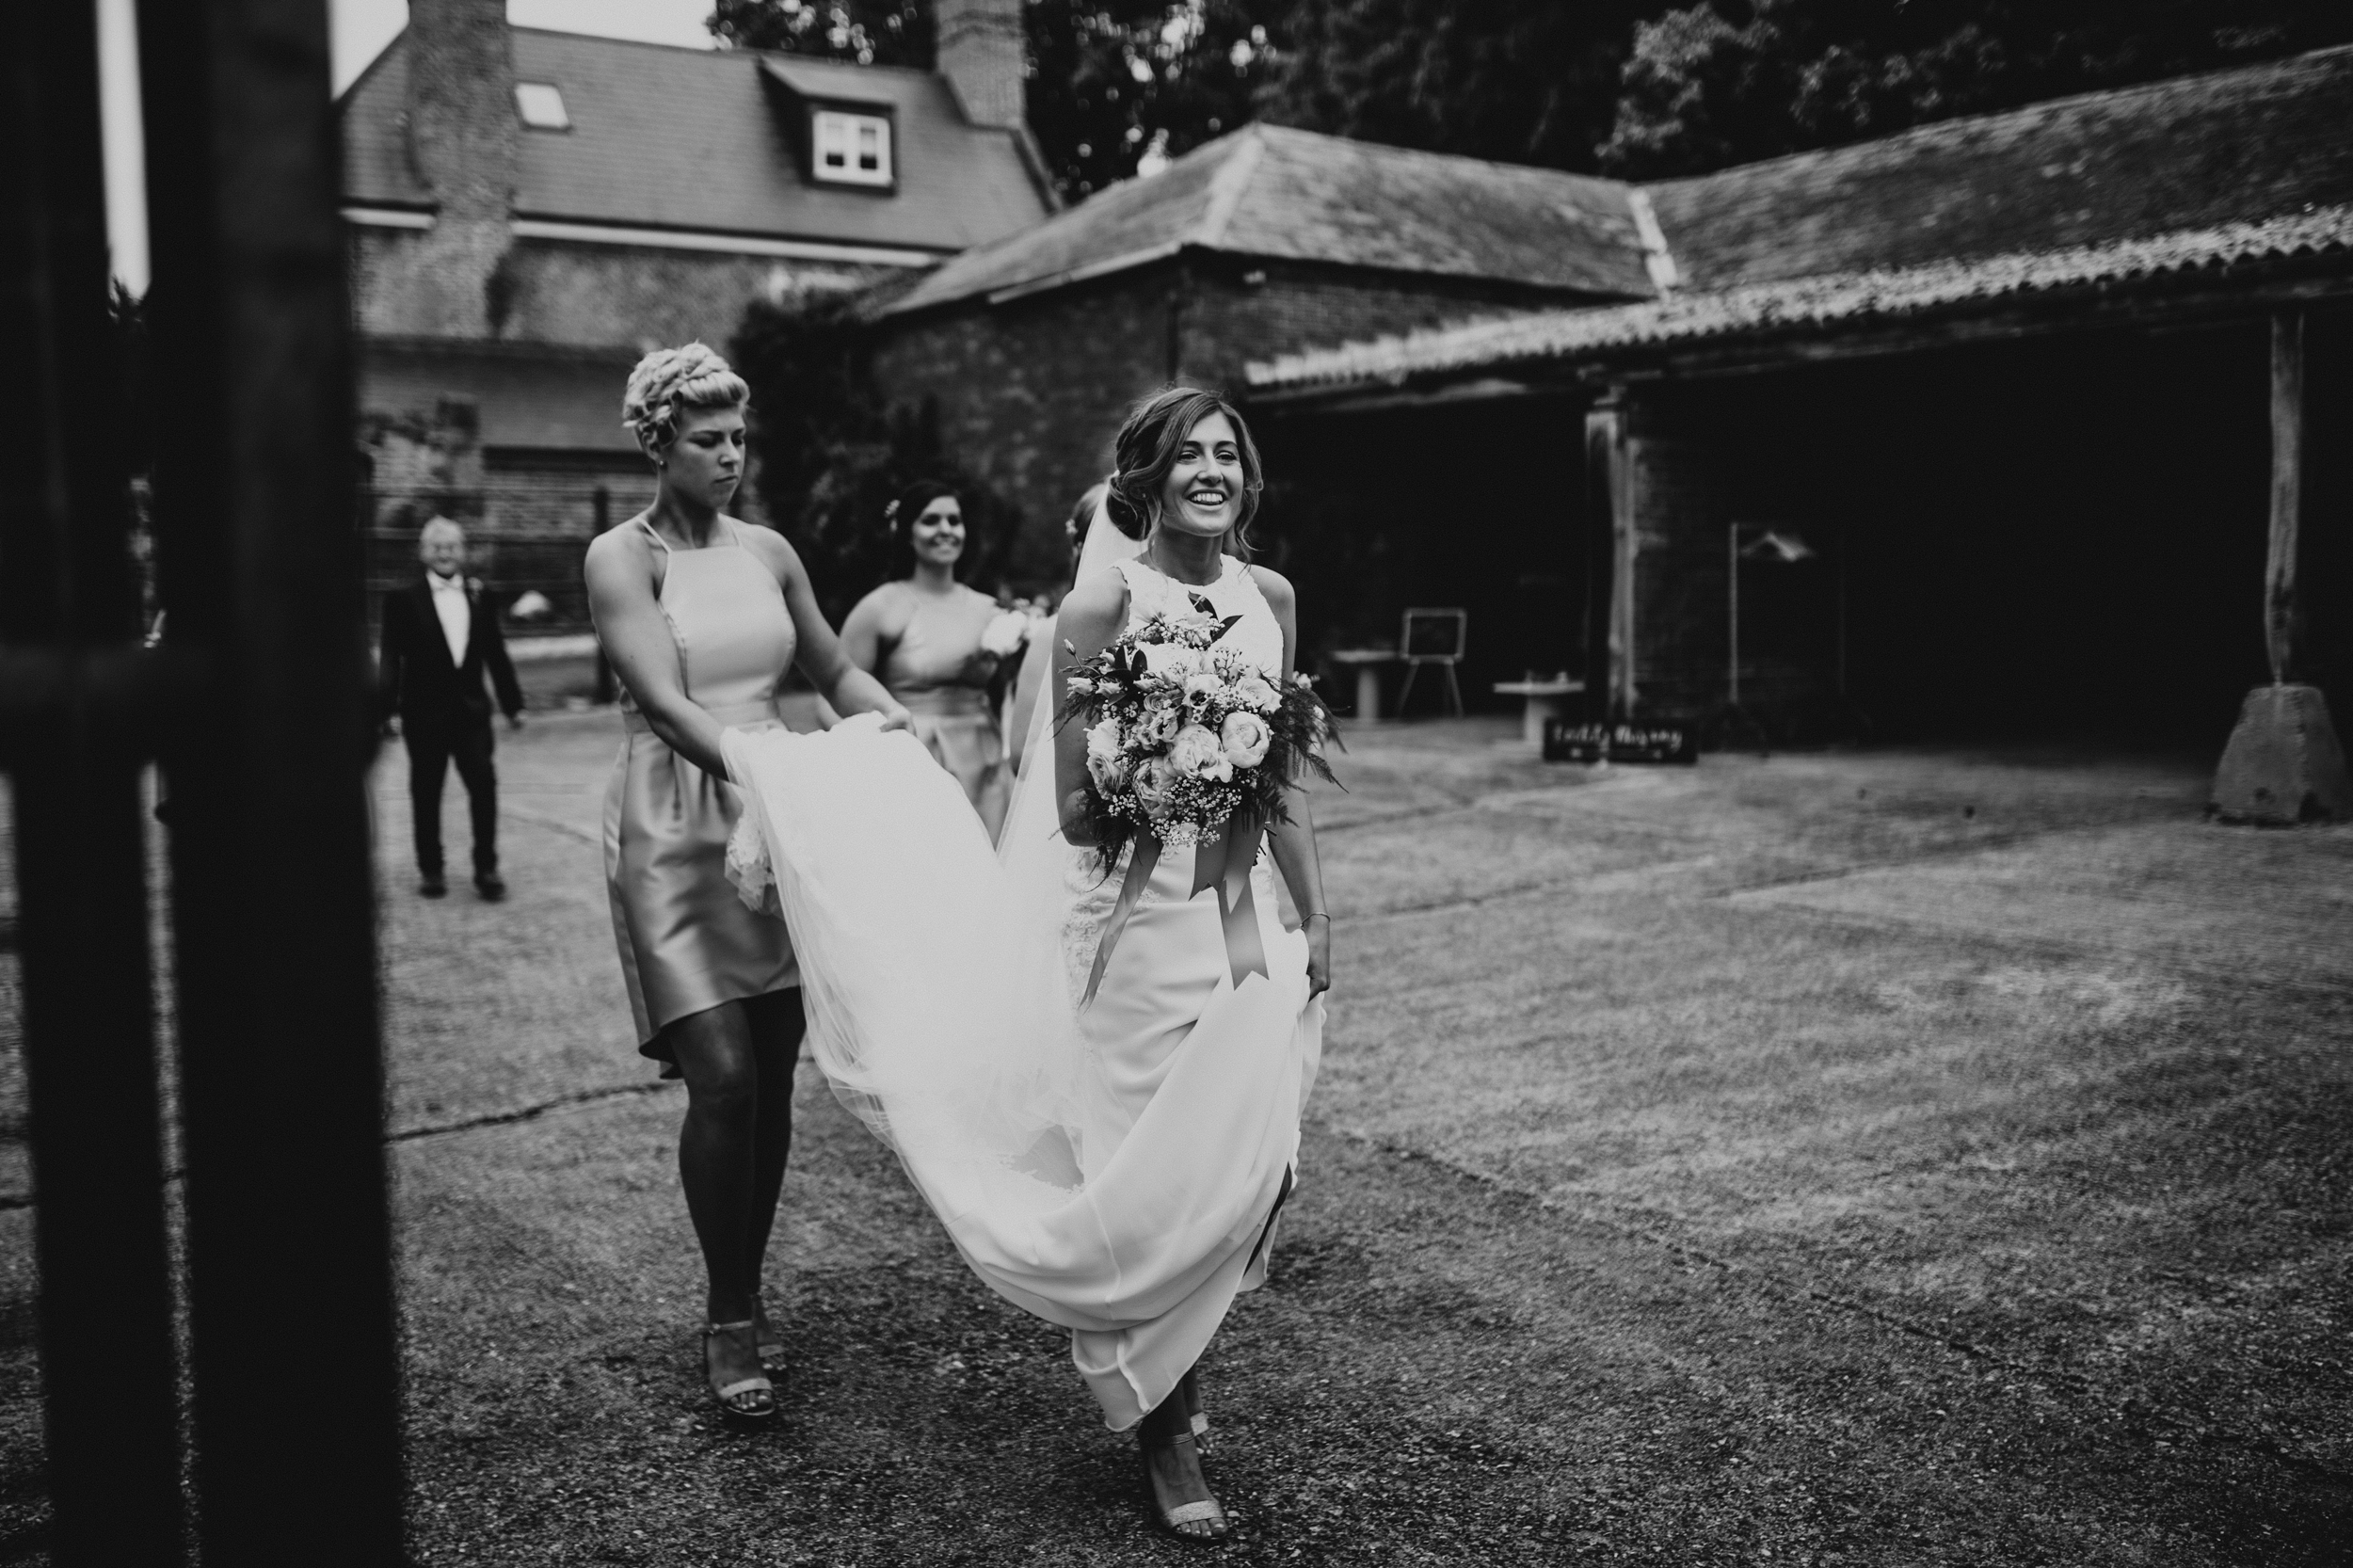 Fiona-Hary-Wedding-Norfolk-Fishley-Hall-Darina-Stoda-Photography-37.jpg